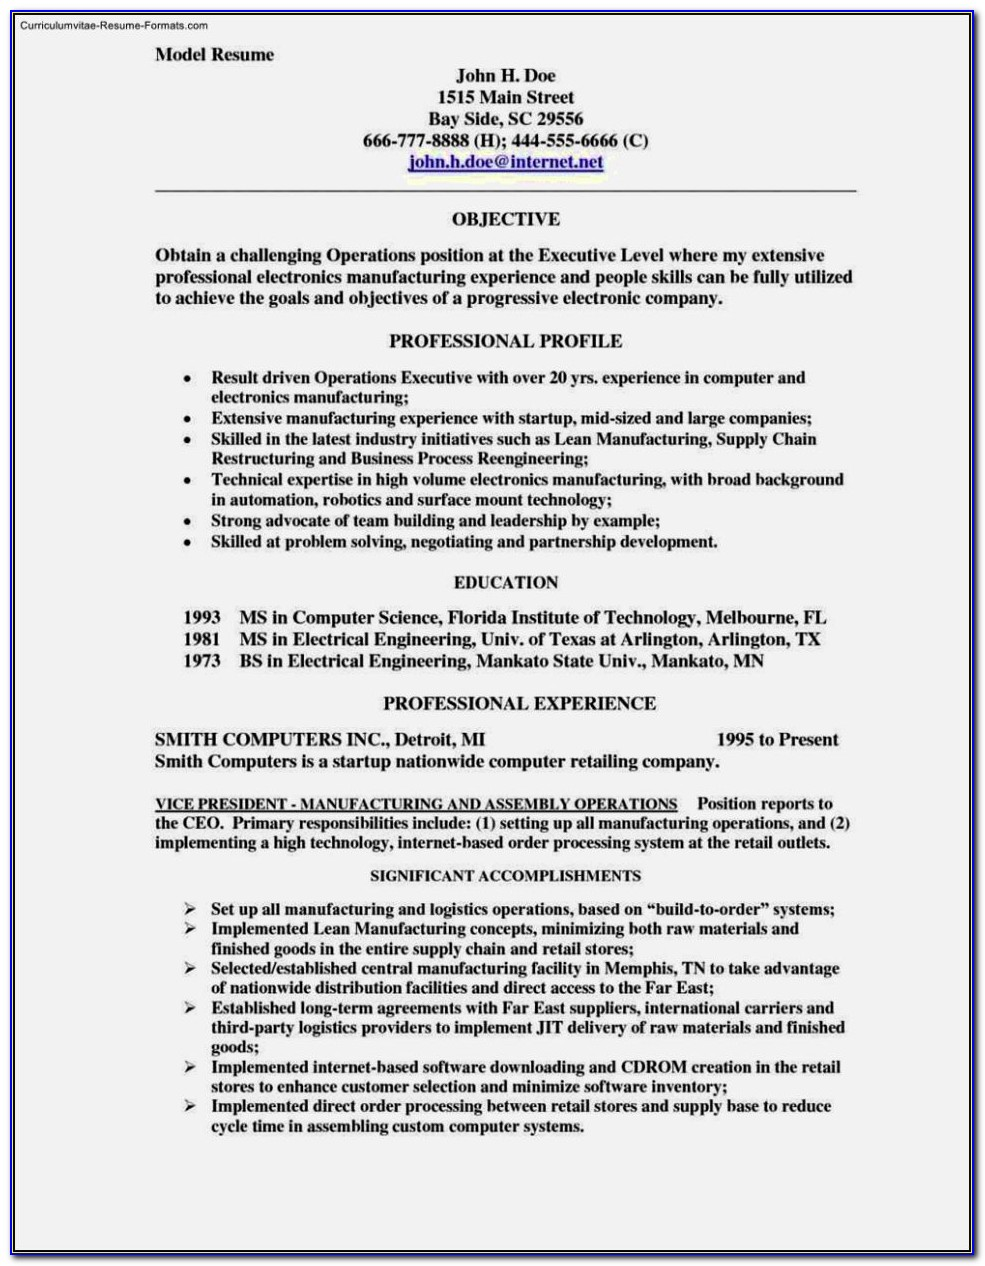 Download Resume Word Format